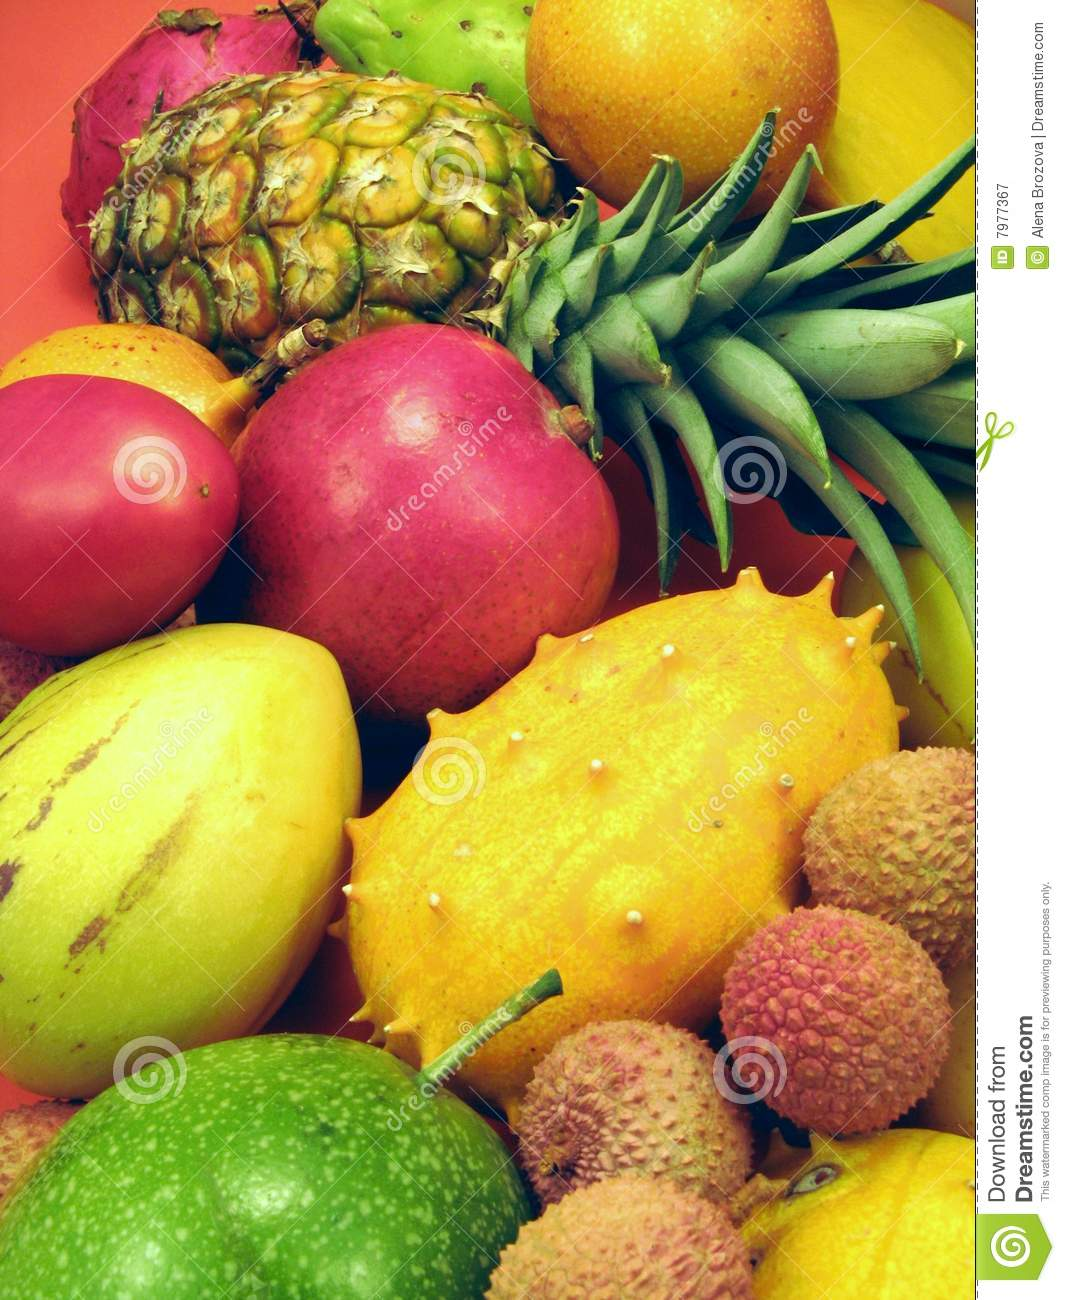 Tropical Fruits And Vegetables Royalty Free Stock ...